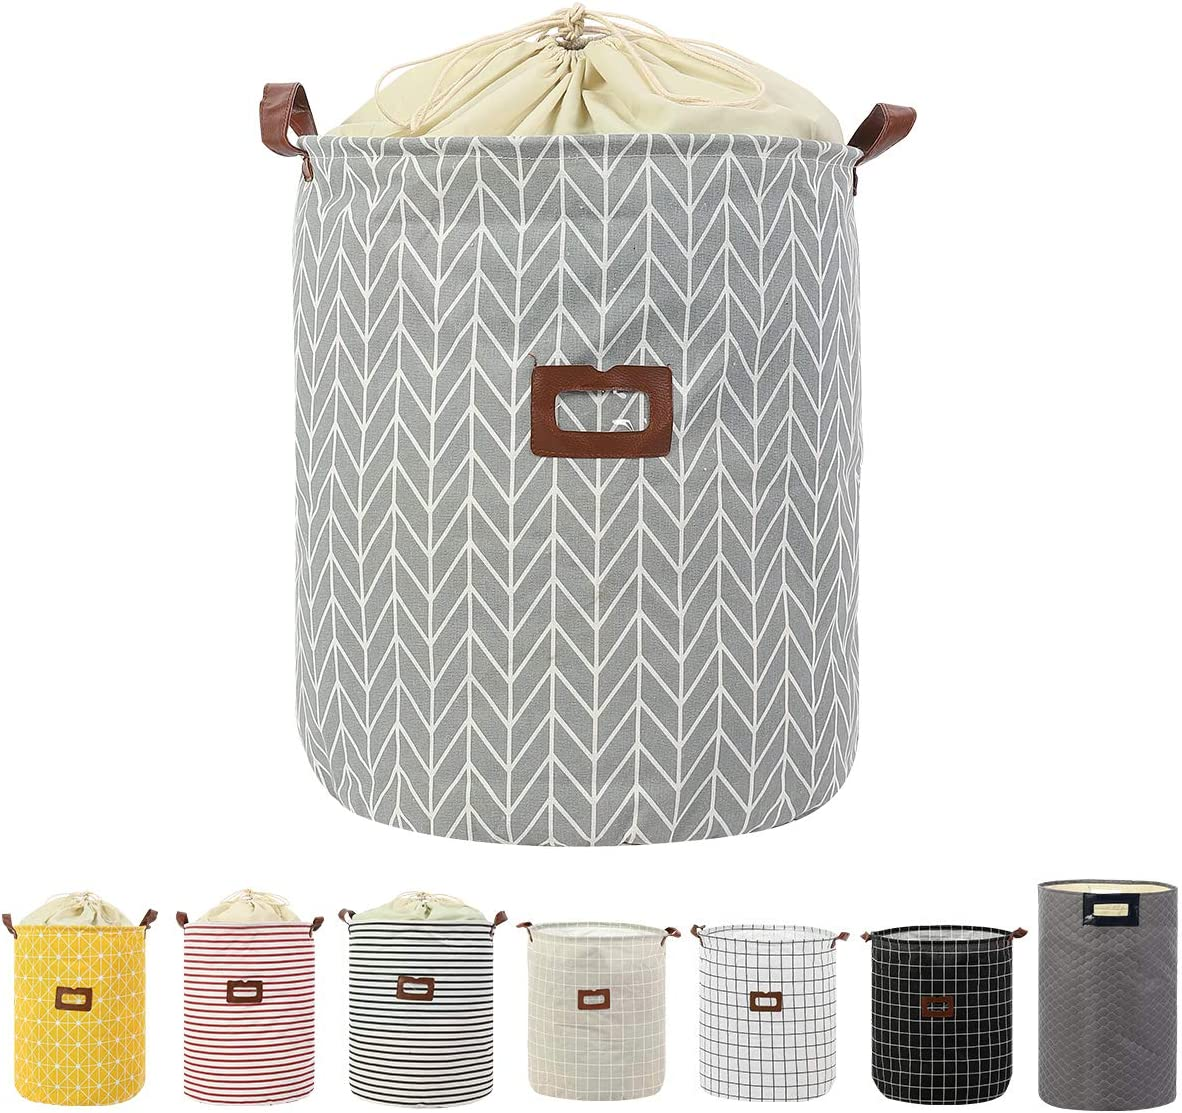 Clothes Laundry Hamper Storage Bin Large Collapsible Storage Basket Kids Canvas Laundry Basket for Home Bedroom Nursery Room (PATTERN-02)